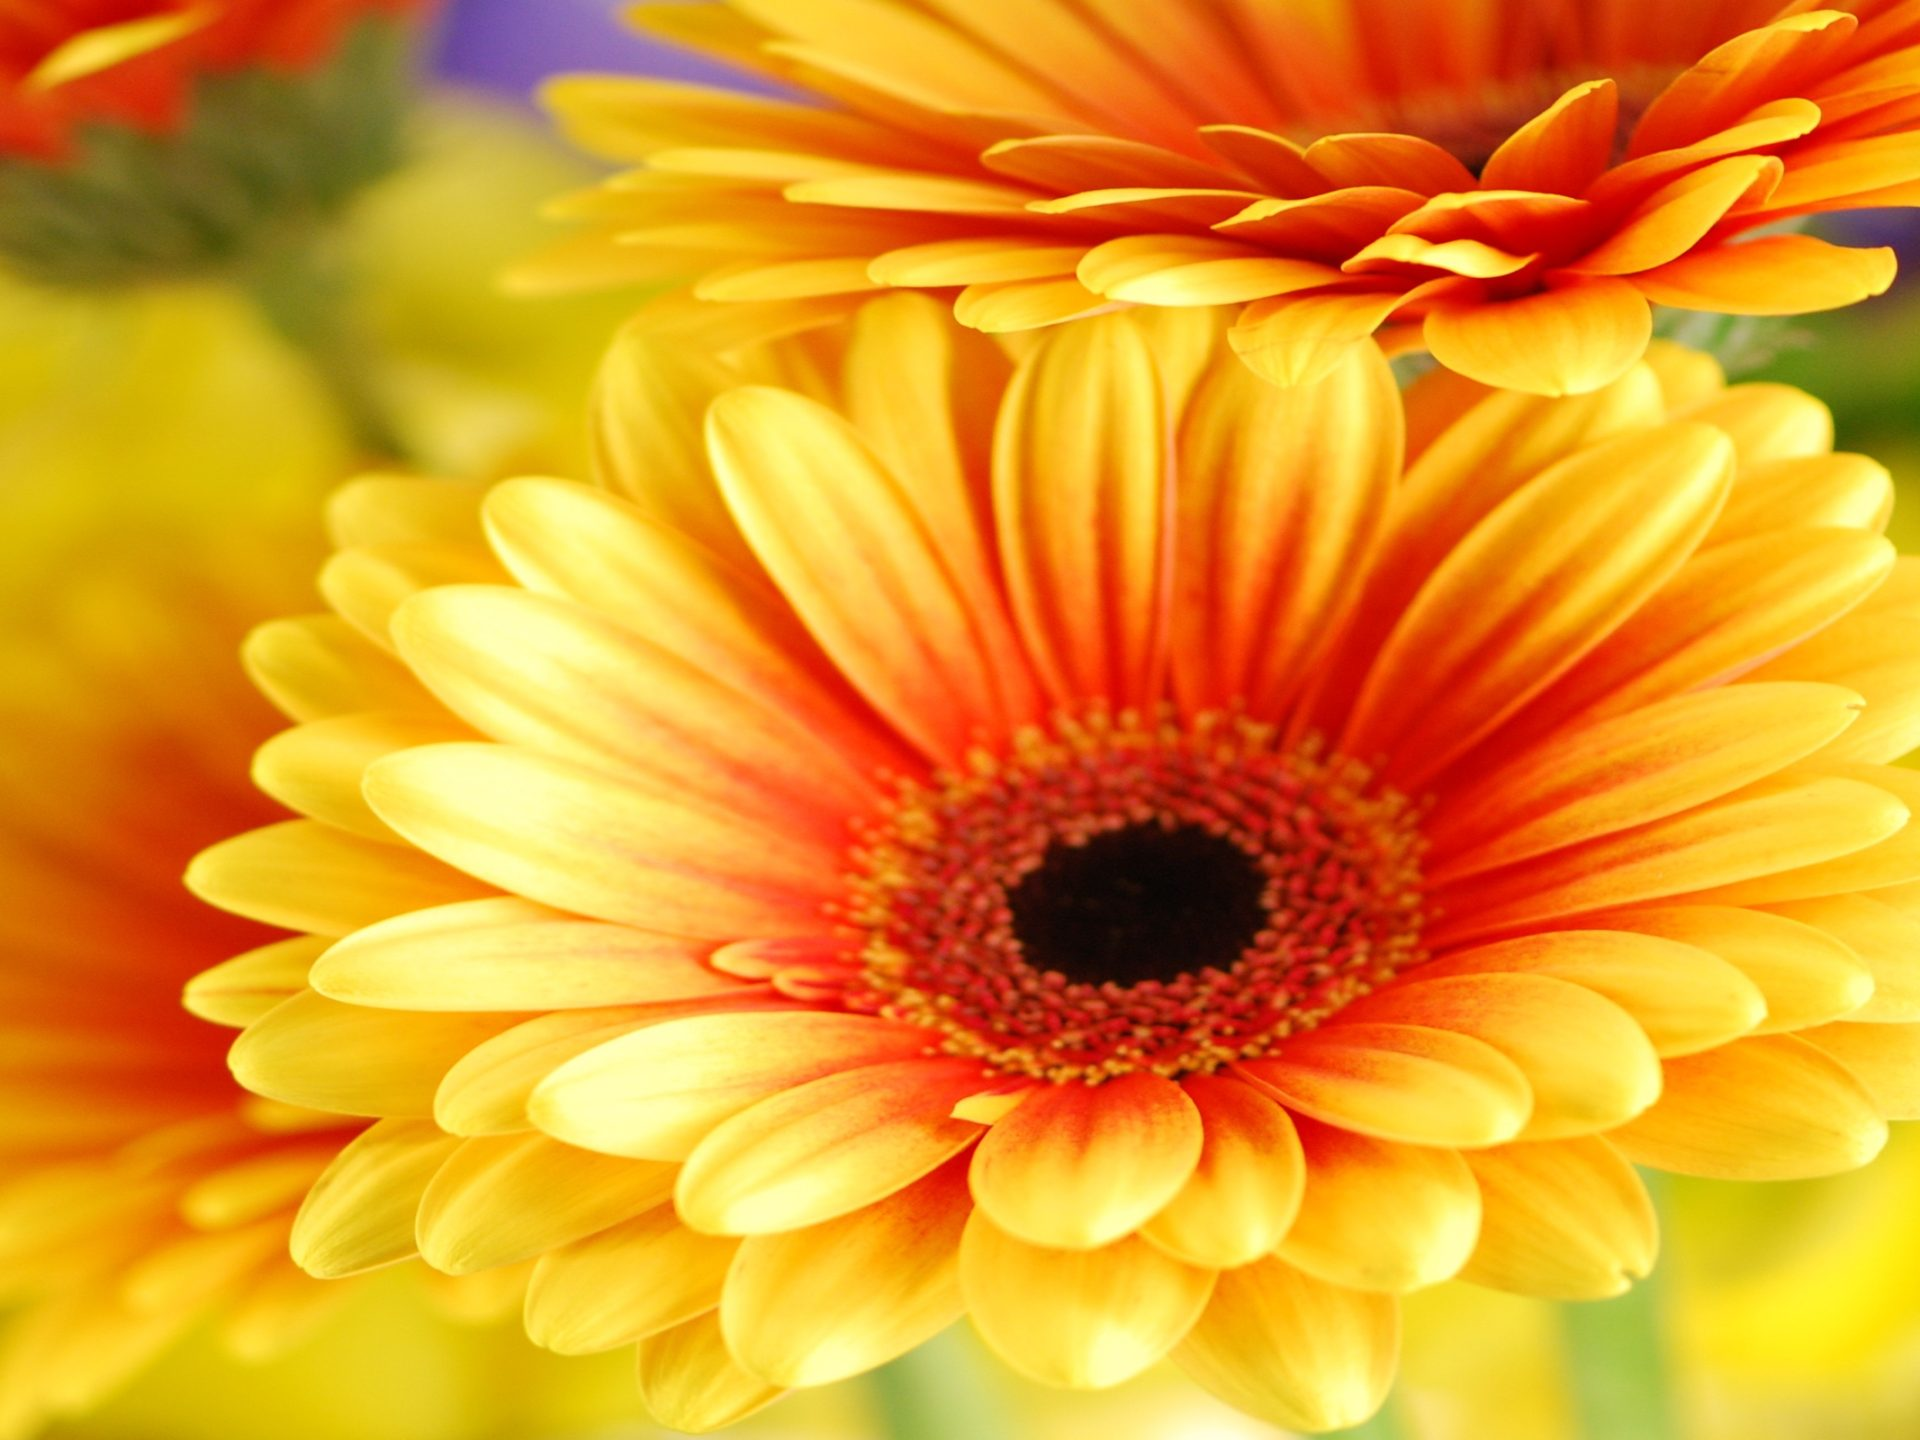 Cute Wallpapers Screensavers Gerbera Daisy Flowers Cute Wallpapers Free Download Cute